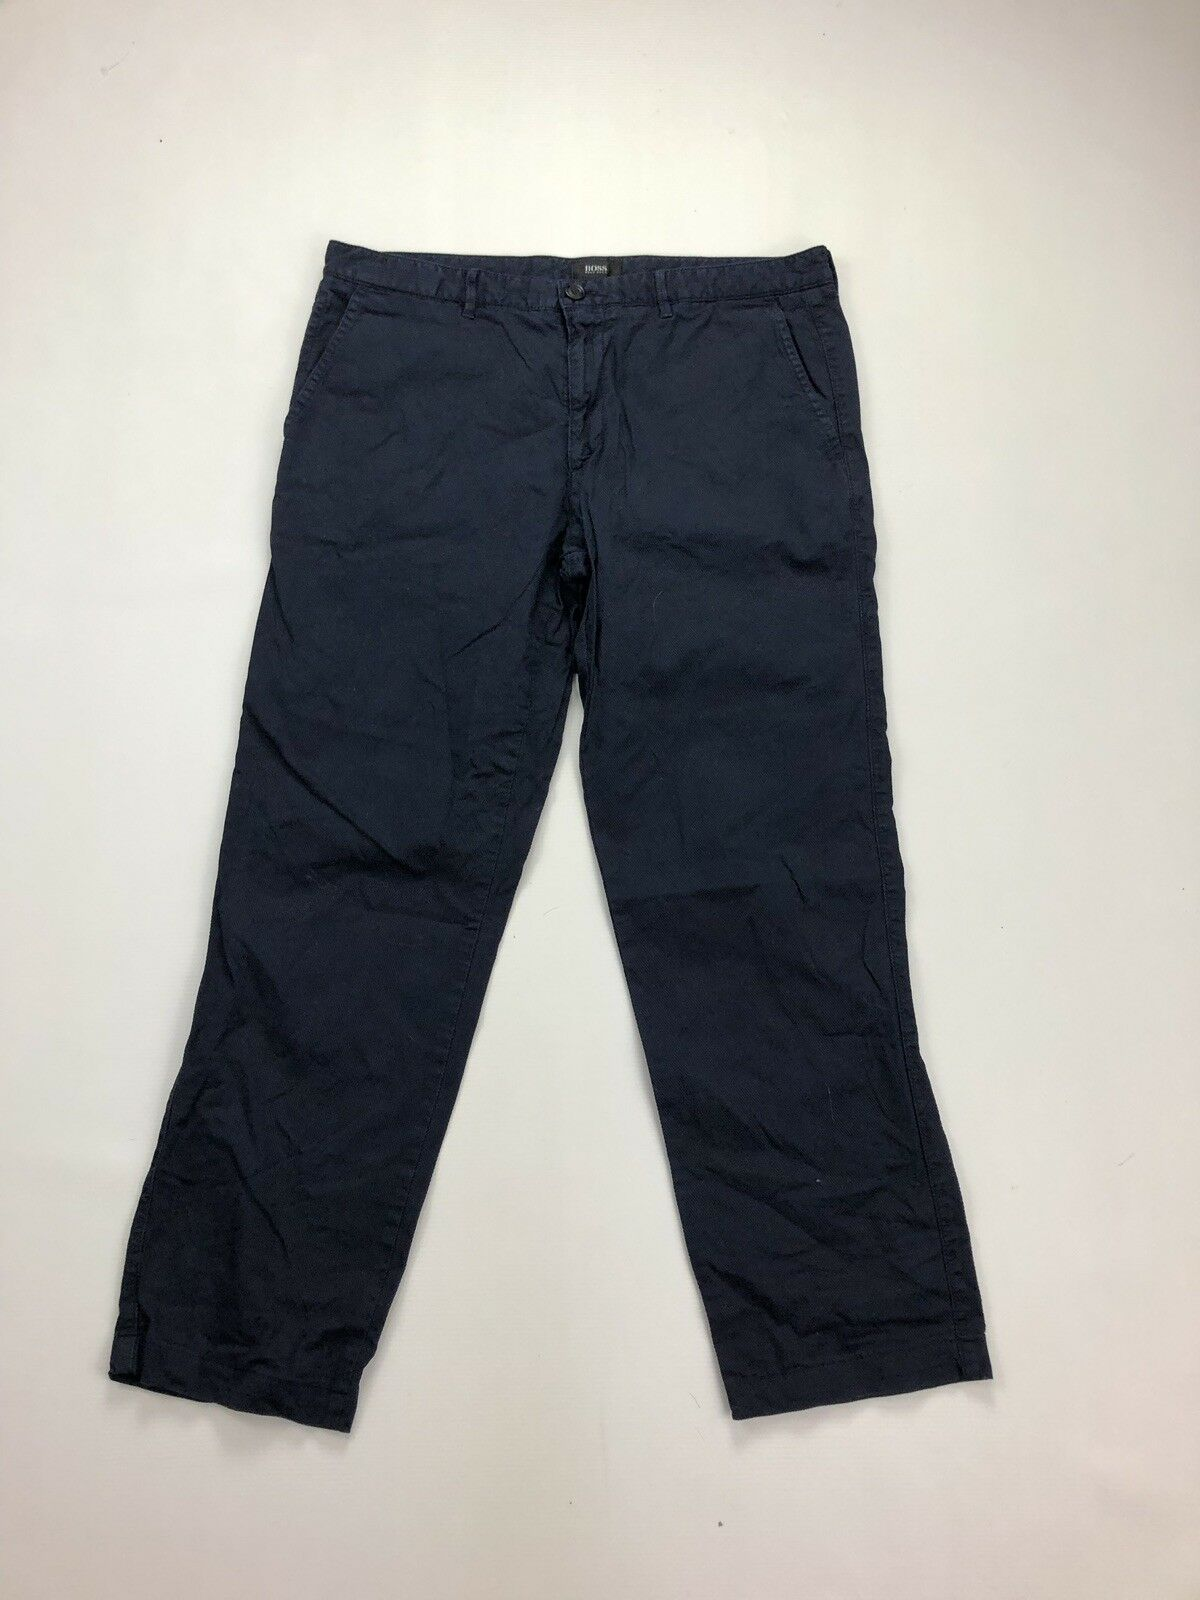 HUGO BOSS Trousers - W34 L28 - Navy - Great Condition - Men's